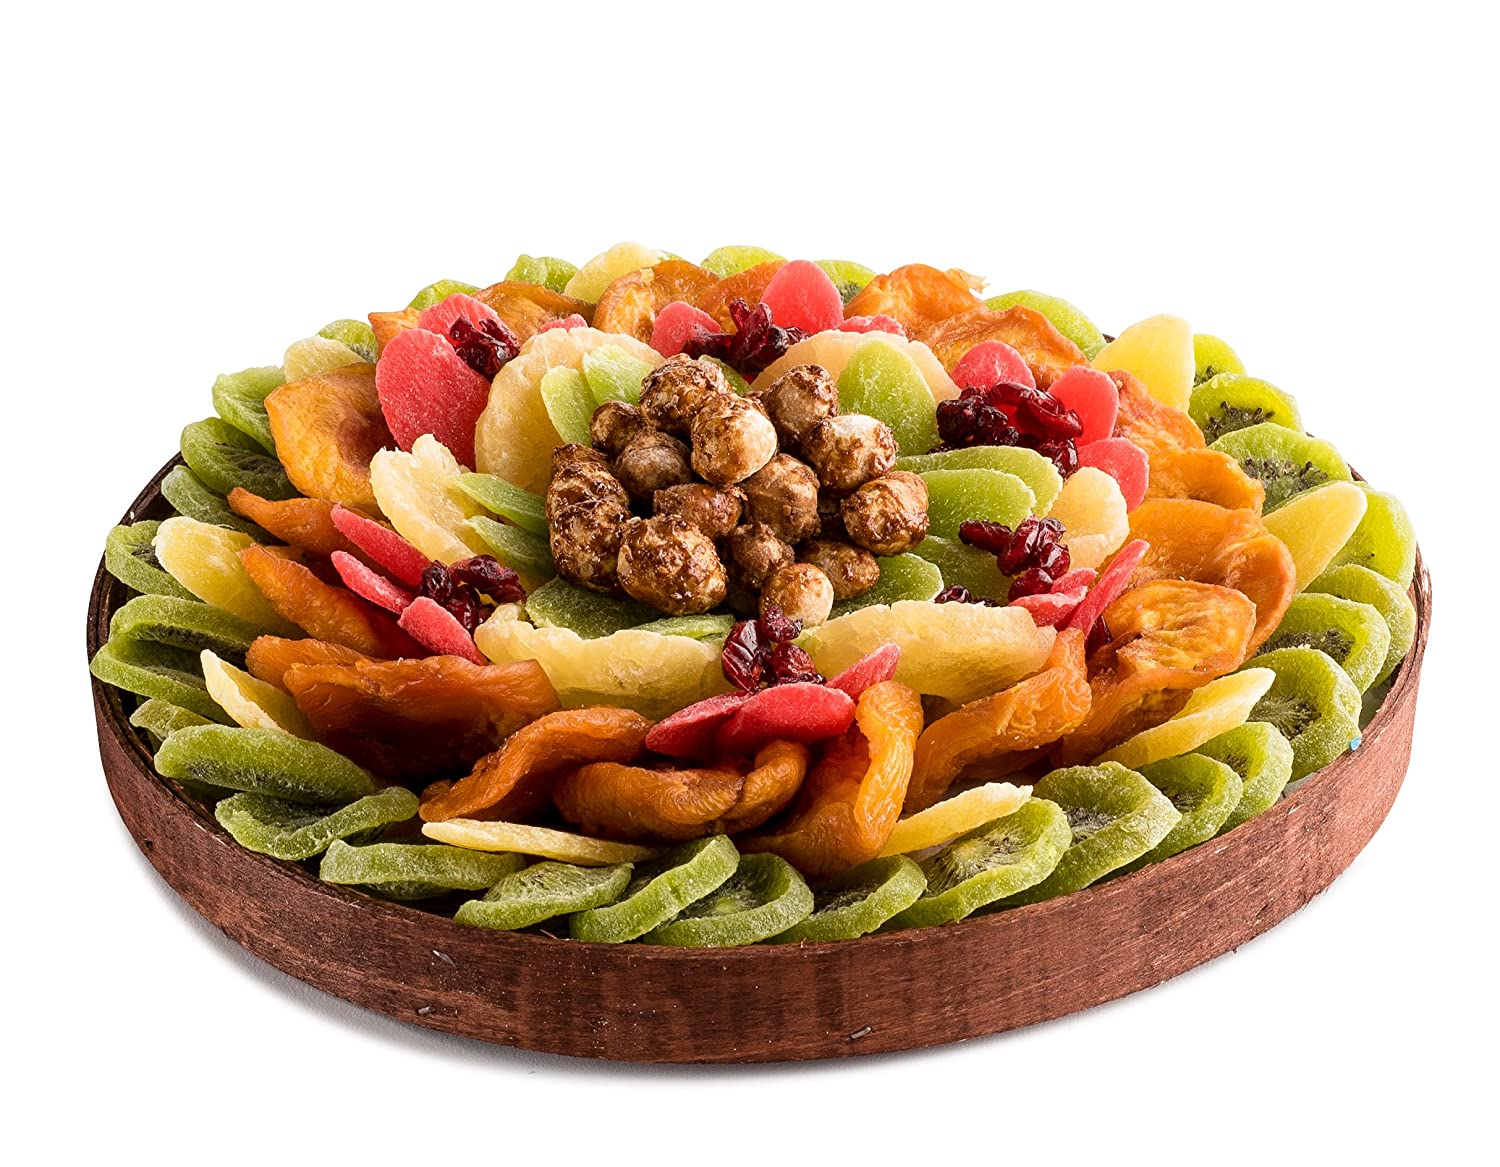 The Nuttery Premium Dried Fruit and Nuts Classic Circular Holiday Gift Platter